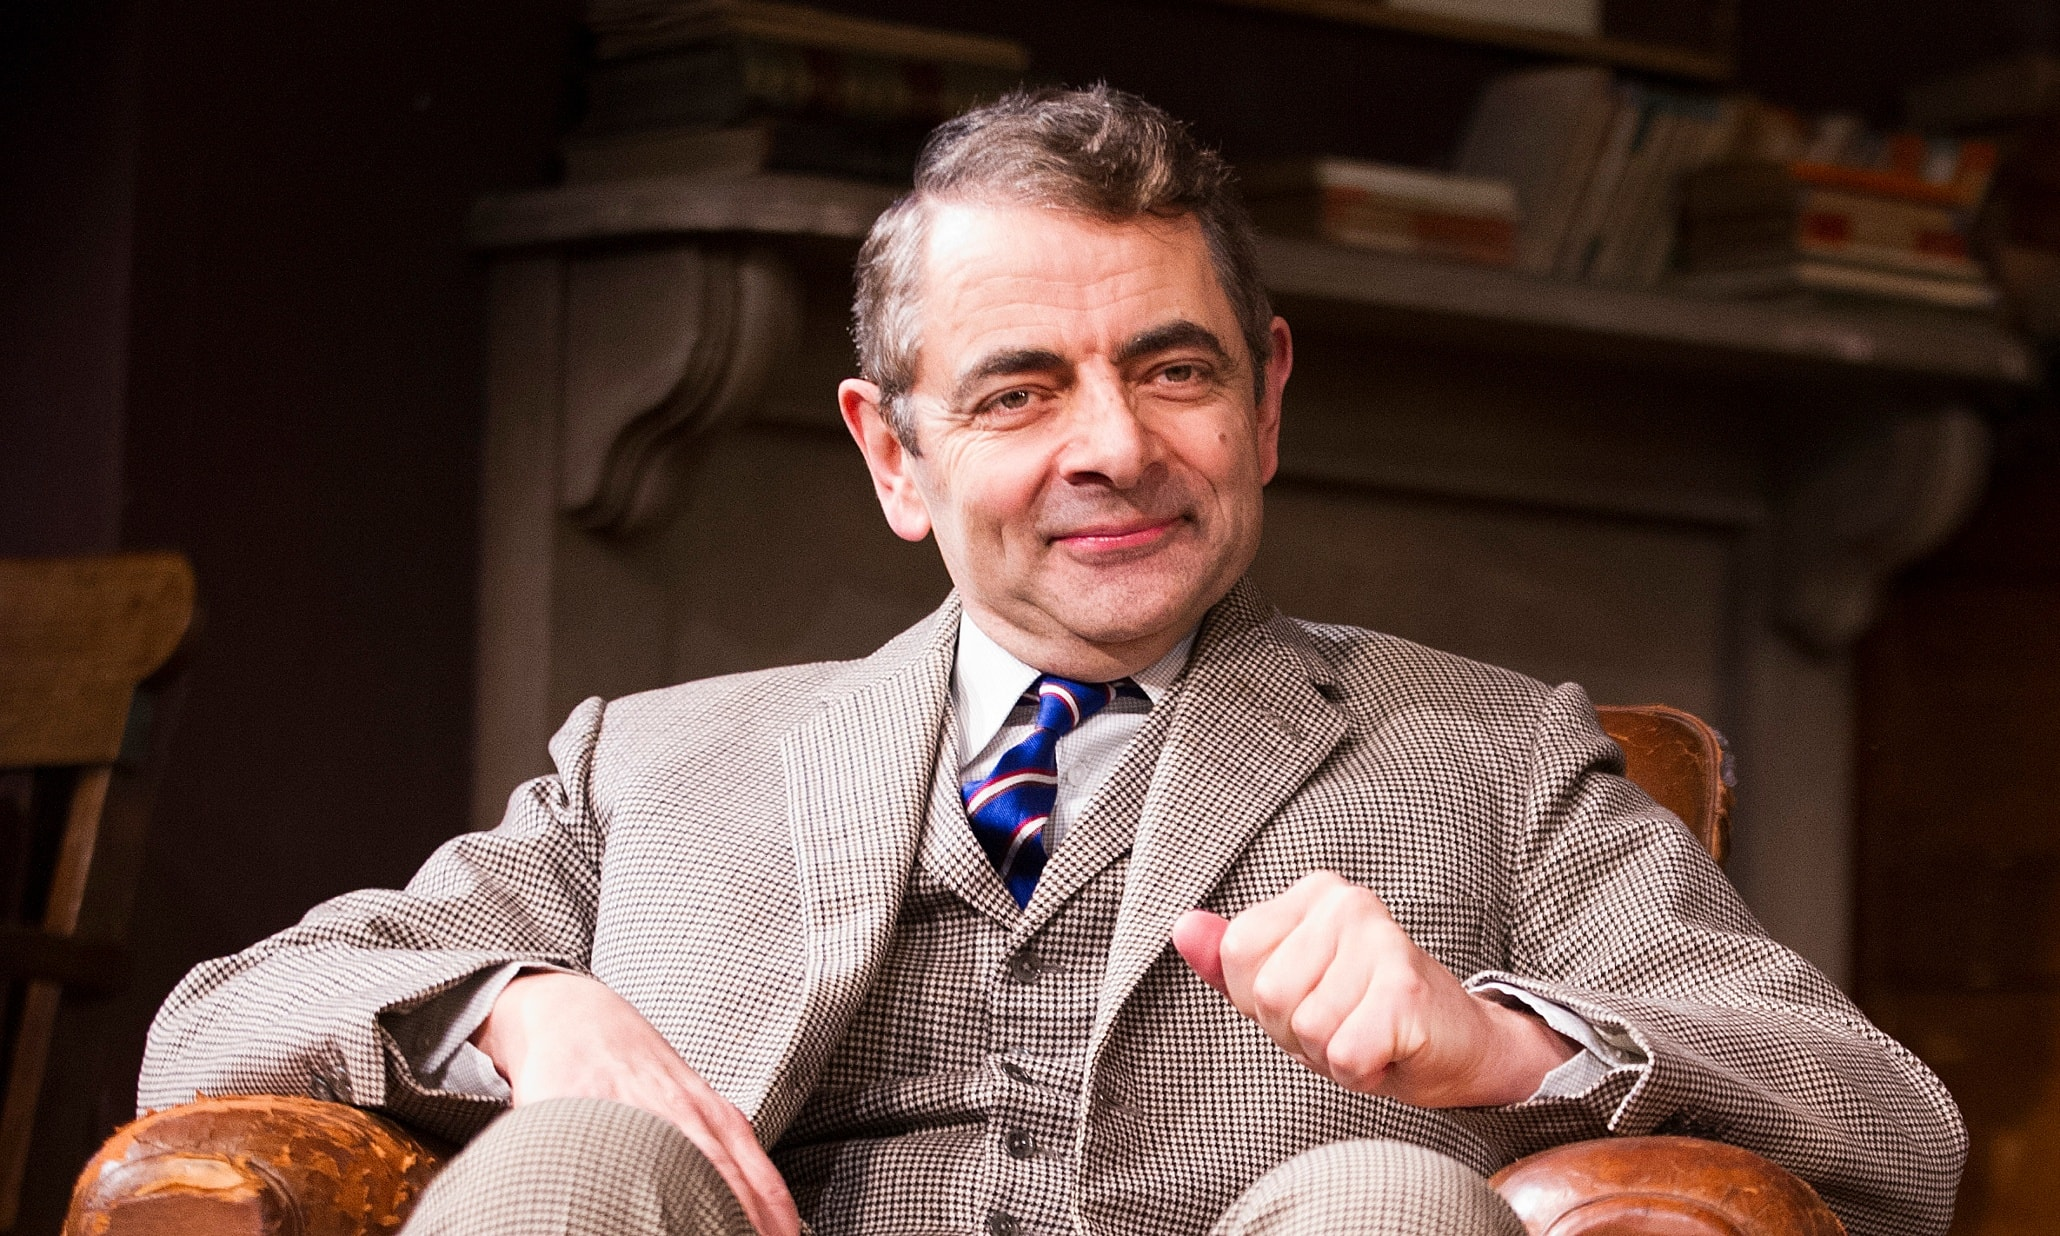 Rowan Atkinson Background